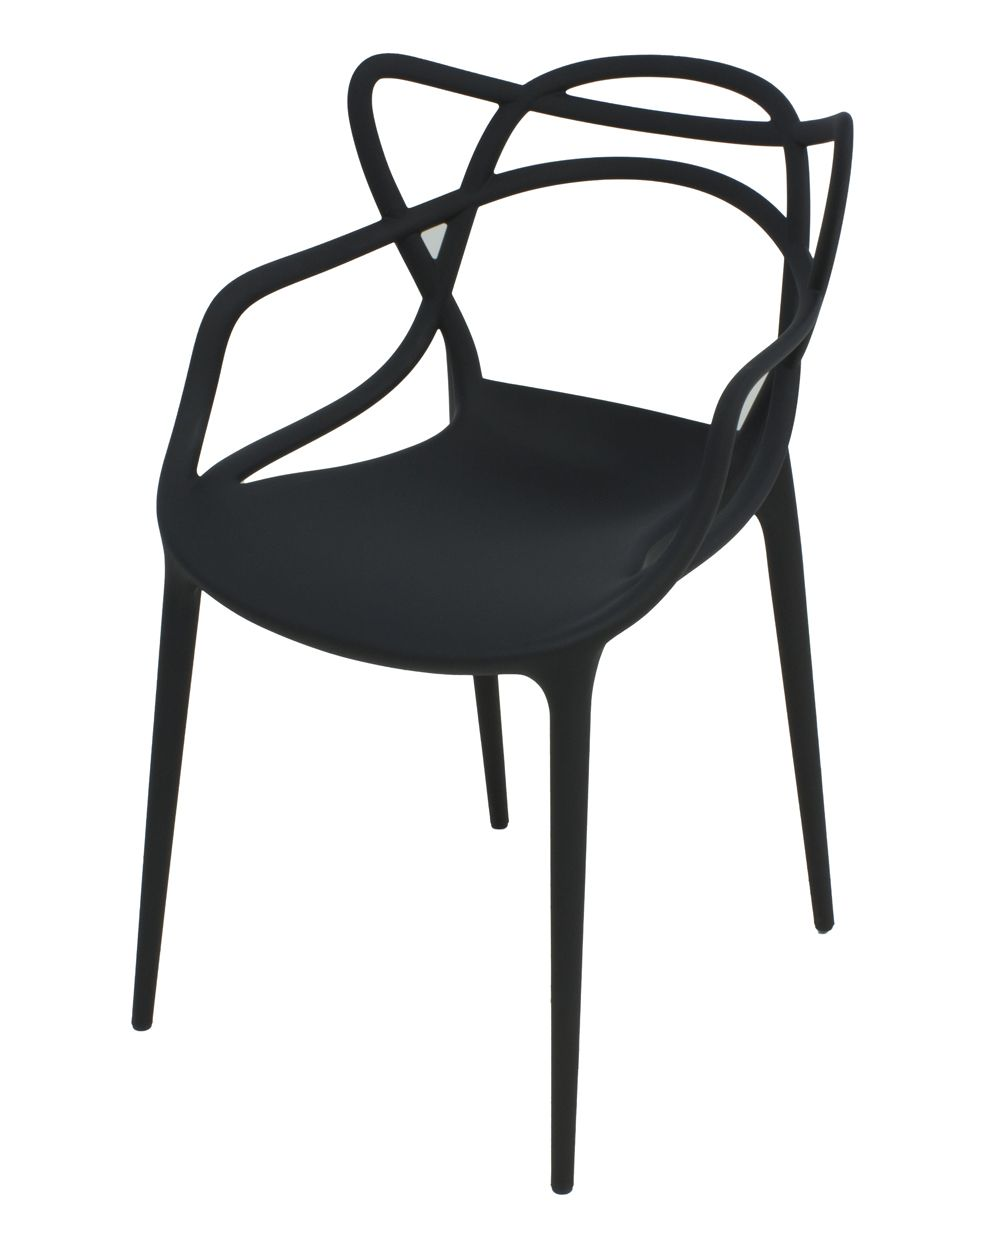 Masters Side Chair Elte The Lines Are Three Contemporary Designs Put Together